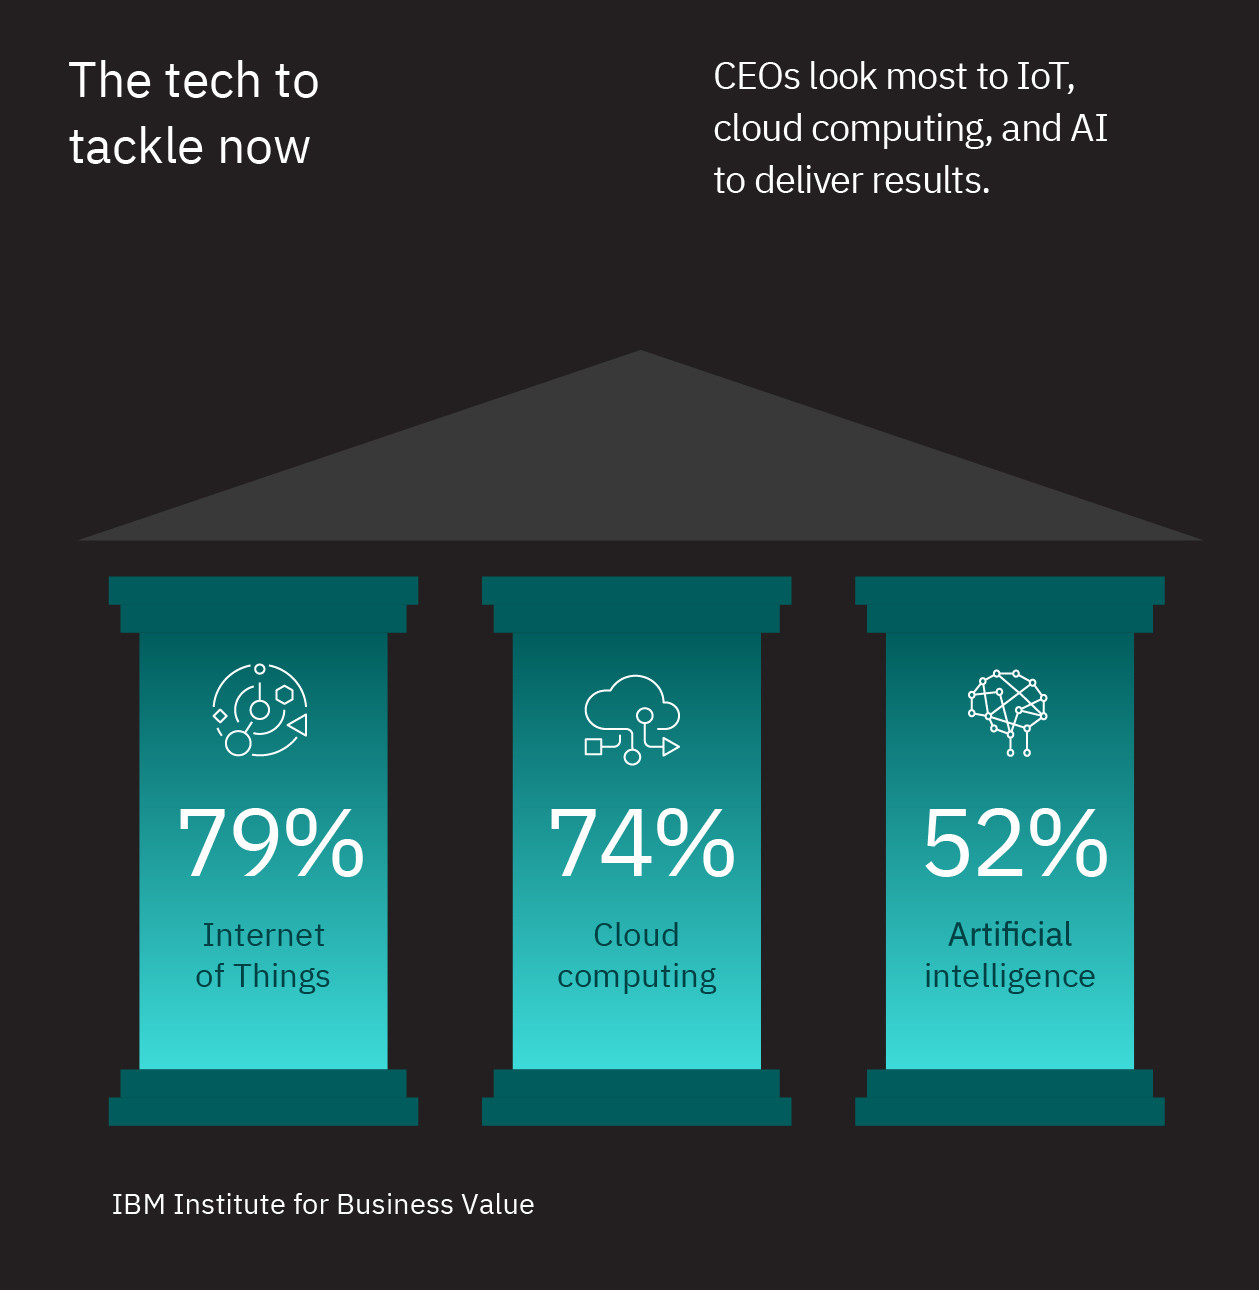 An image showing the technologies which CEOs expect to deliver results for them over the next few years